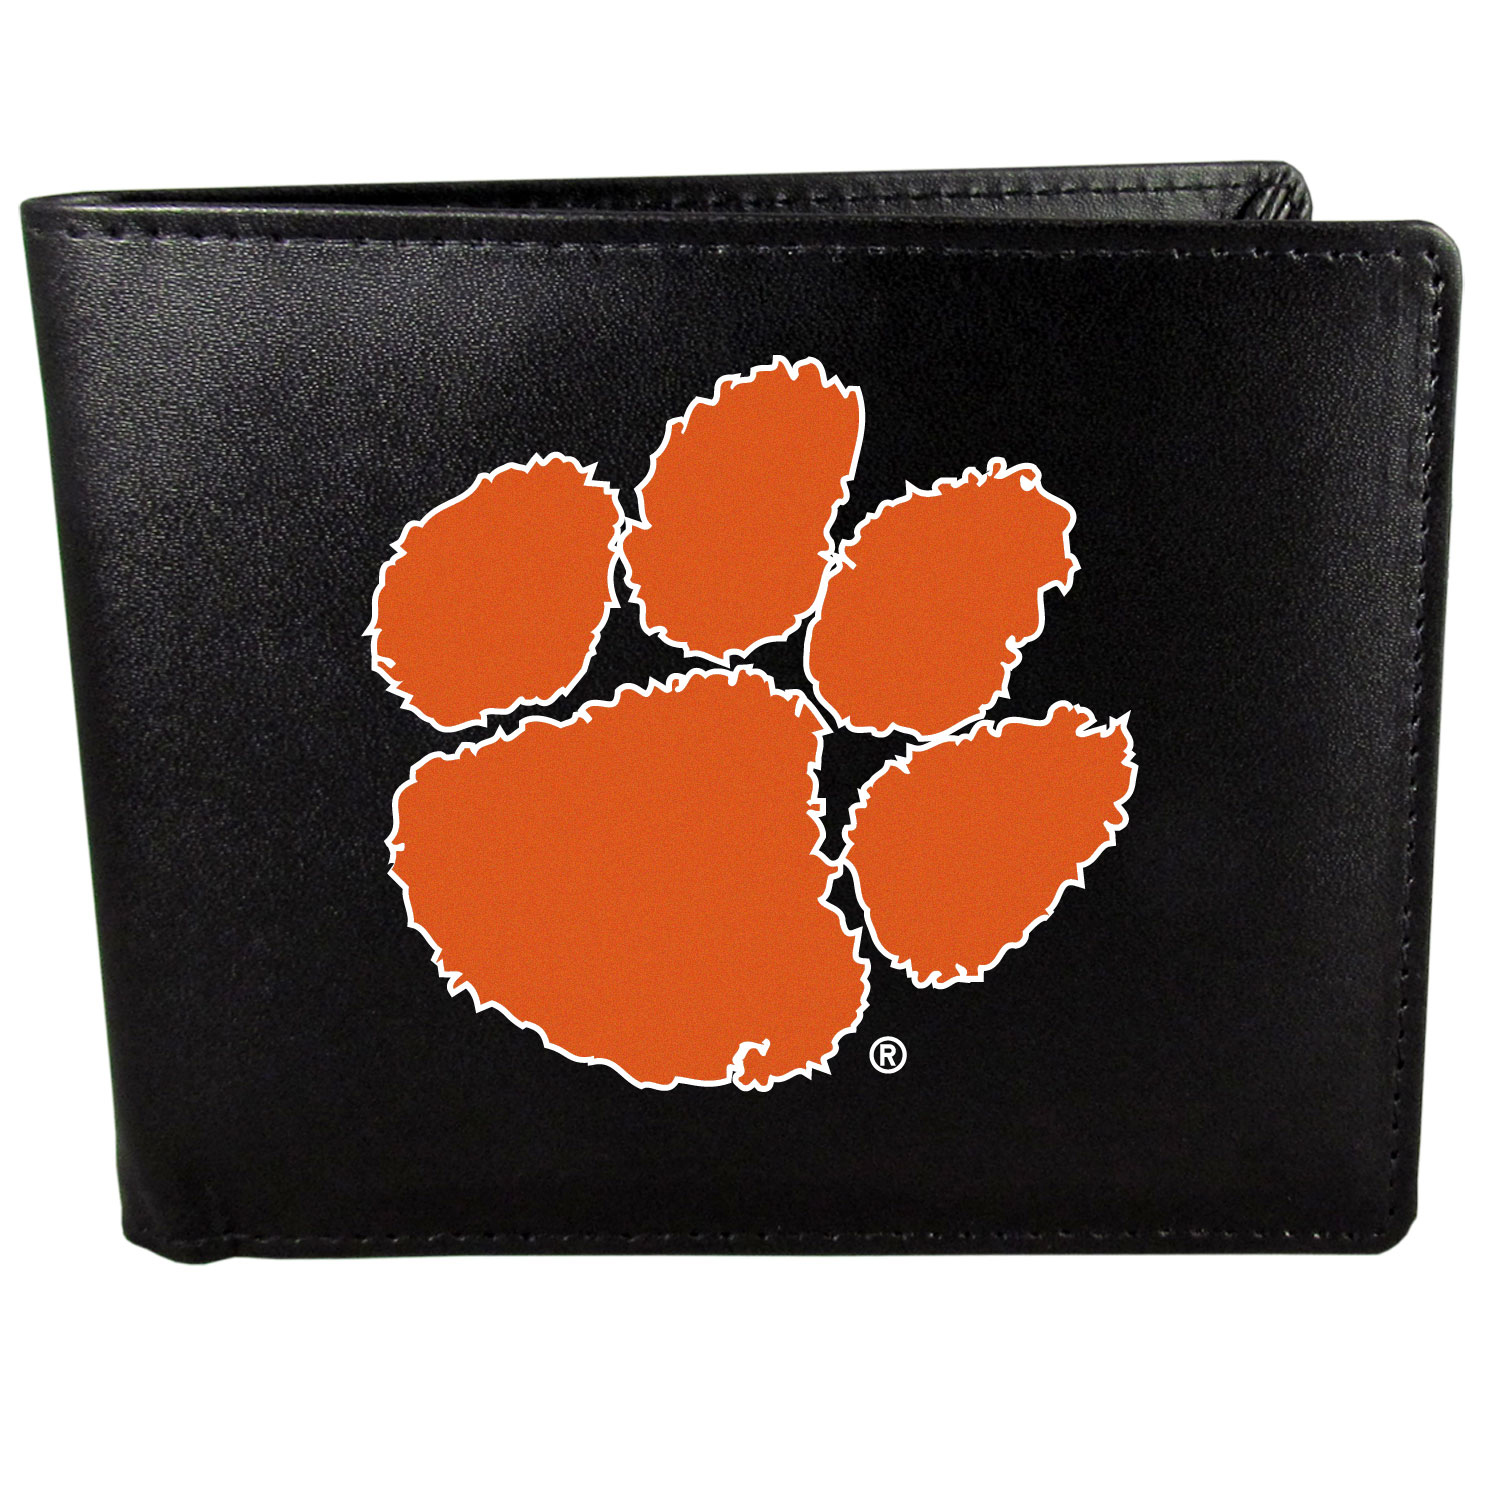 Clemson Tigers Leather Bi-fold Wallet, Large Logo - Our classic fine leather bi-fold wallet is meticulously crafted with genuine leather that will age beautifully so you will have a quality wallet for years to come. The wallet opens to a large, billfold pocket and numerous credit card slots and has a convenient windowed ID slot. The front of the wallet features an extra large Clemson Tigers printed logo.